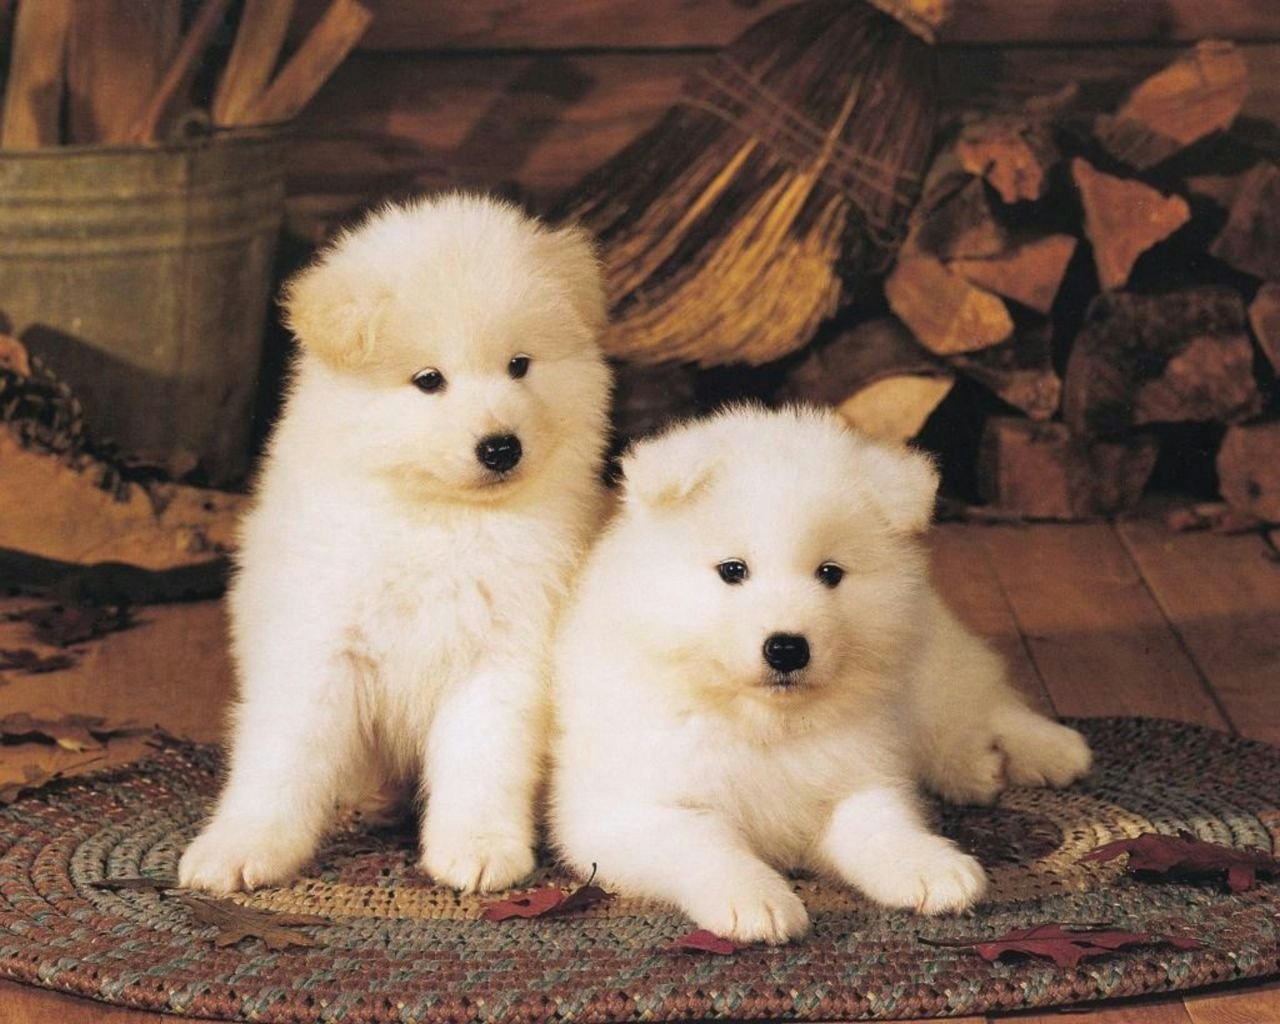 All Wallpapers Akita Puppies hd Wallpapers 2013 1280x1024